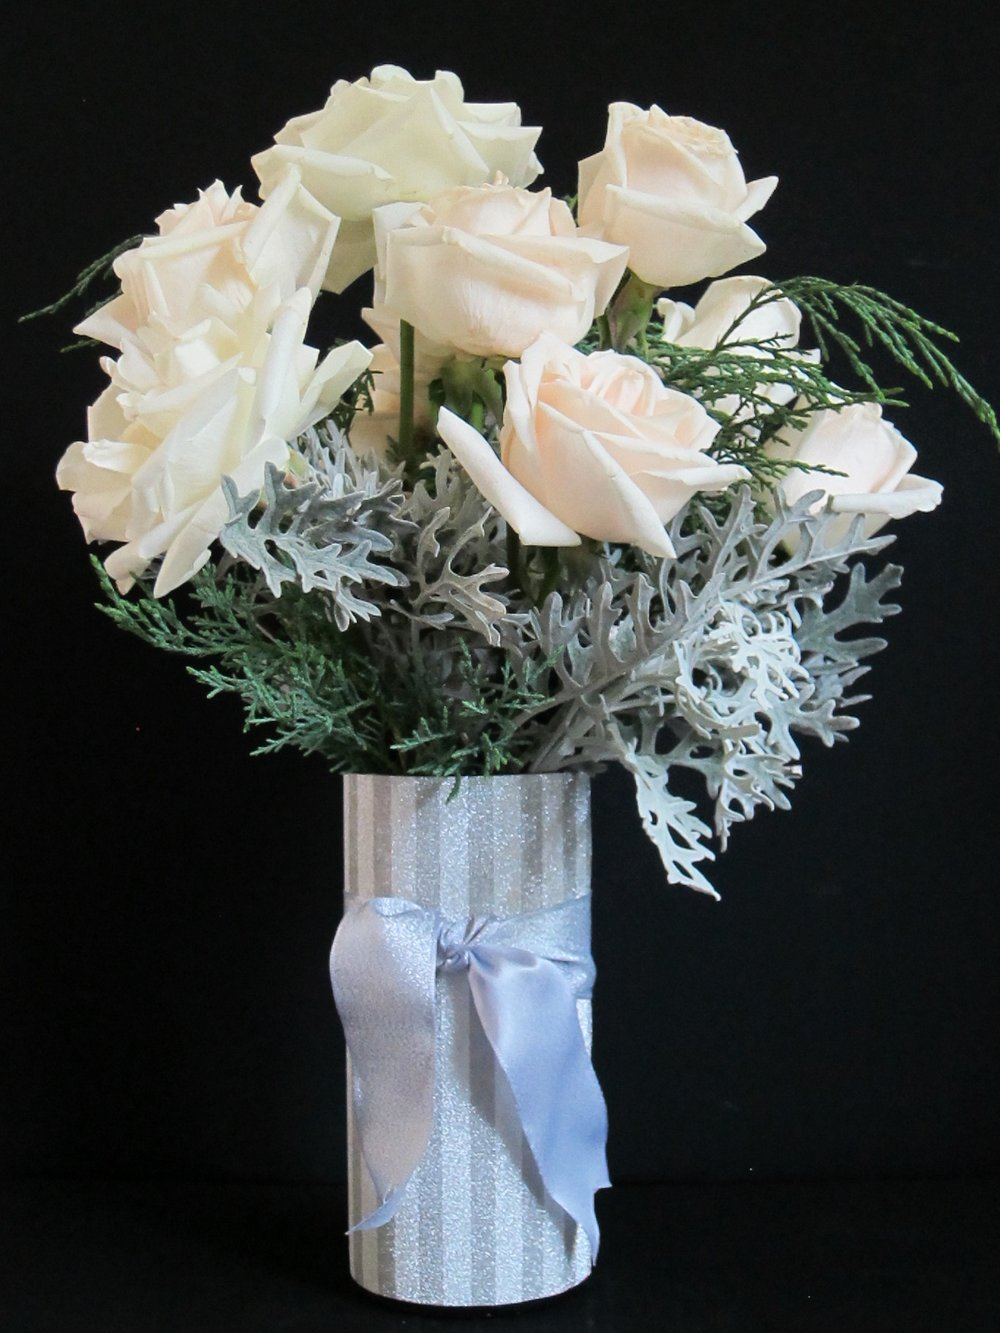 Say HAPPY ANNIVERSARY with a dozen full South American roses in a silver or gold crafted vase for $49. Lovely with red roses also.